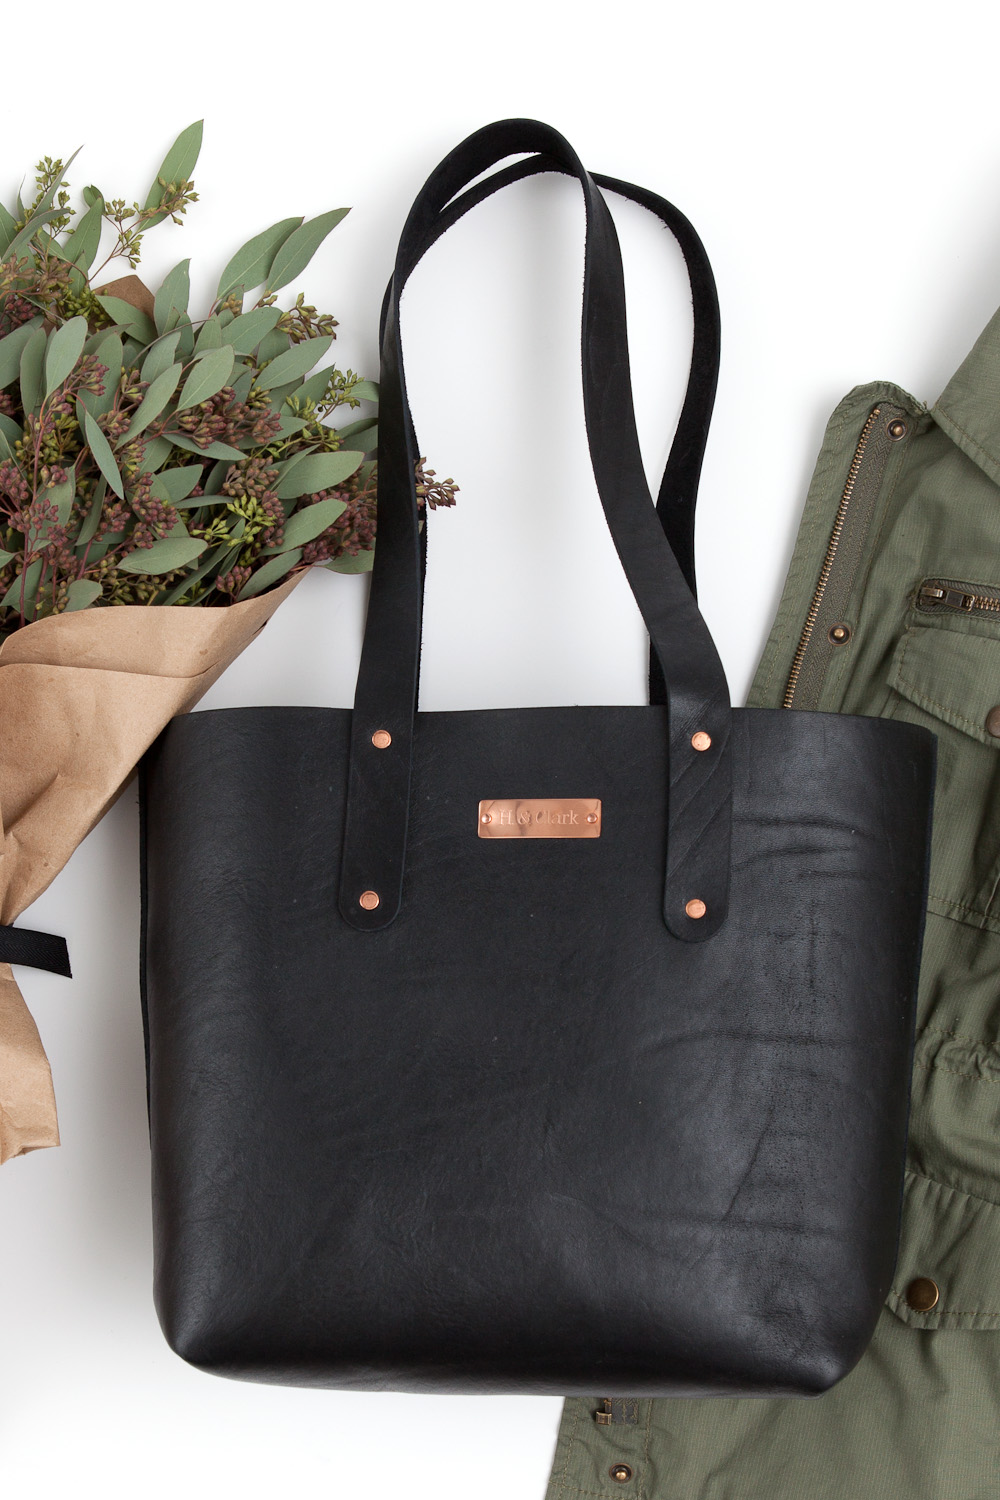 styled product black leather tote